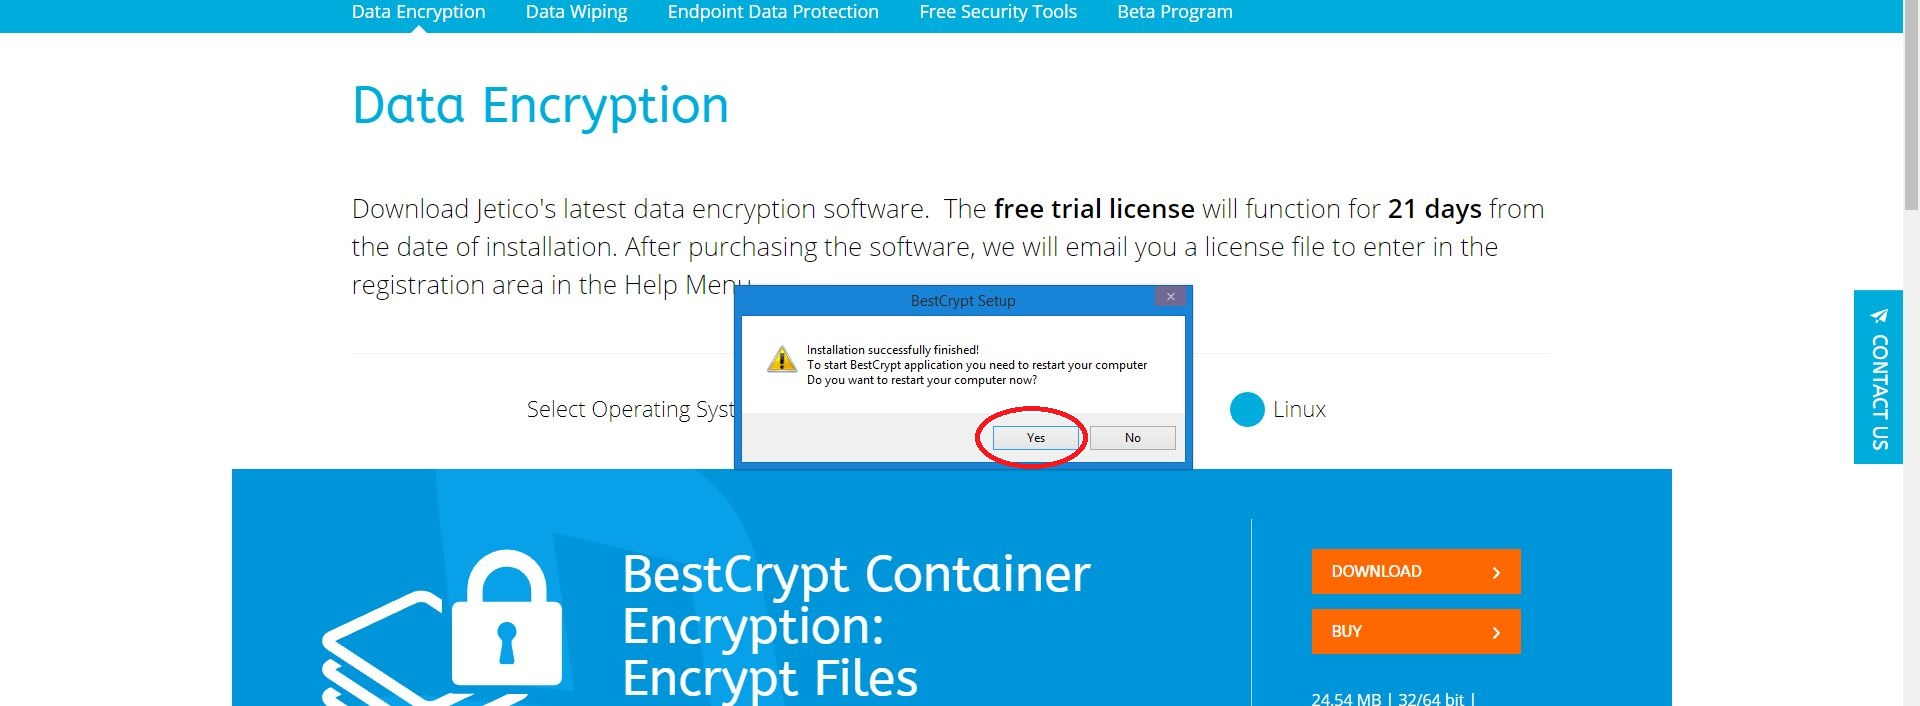 How To Encrypt Files on Desktop, iPhone and Android | Ubergizmo